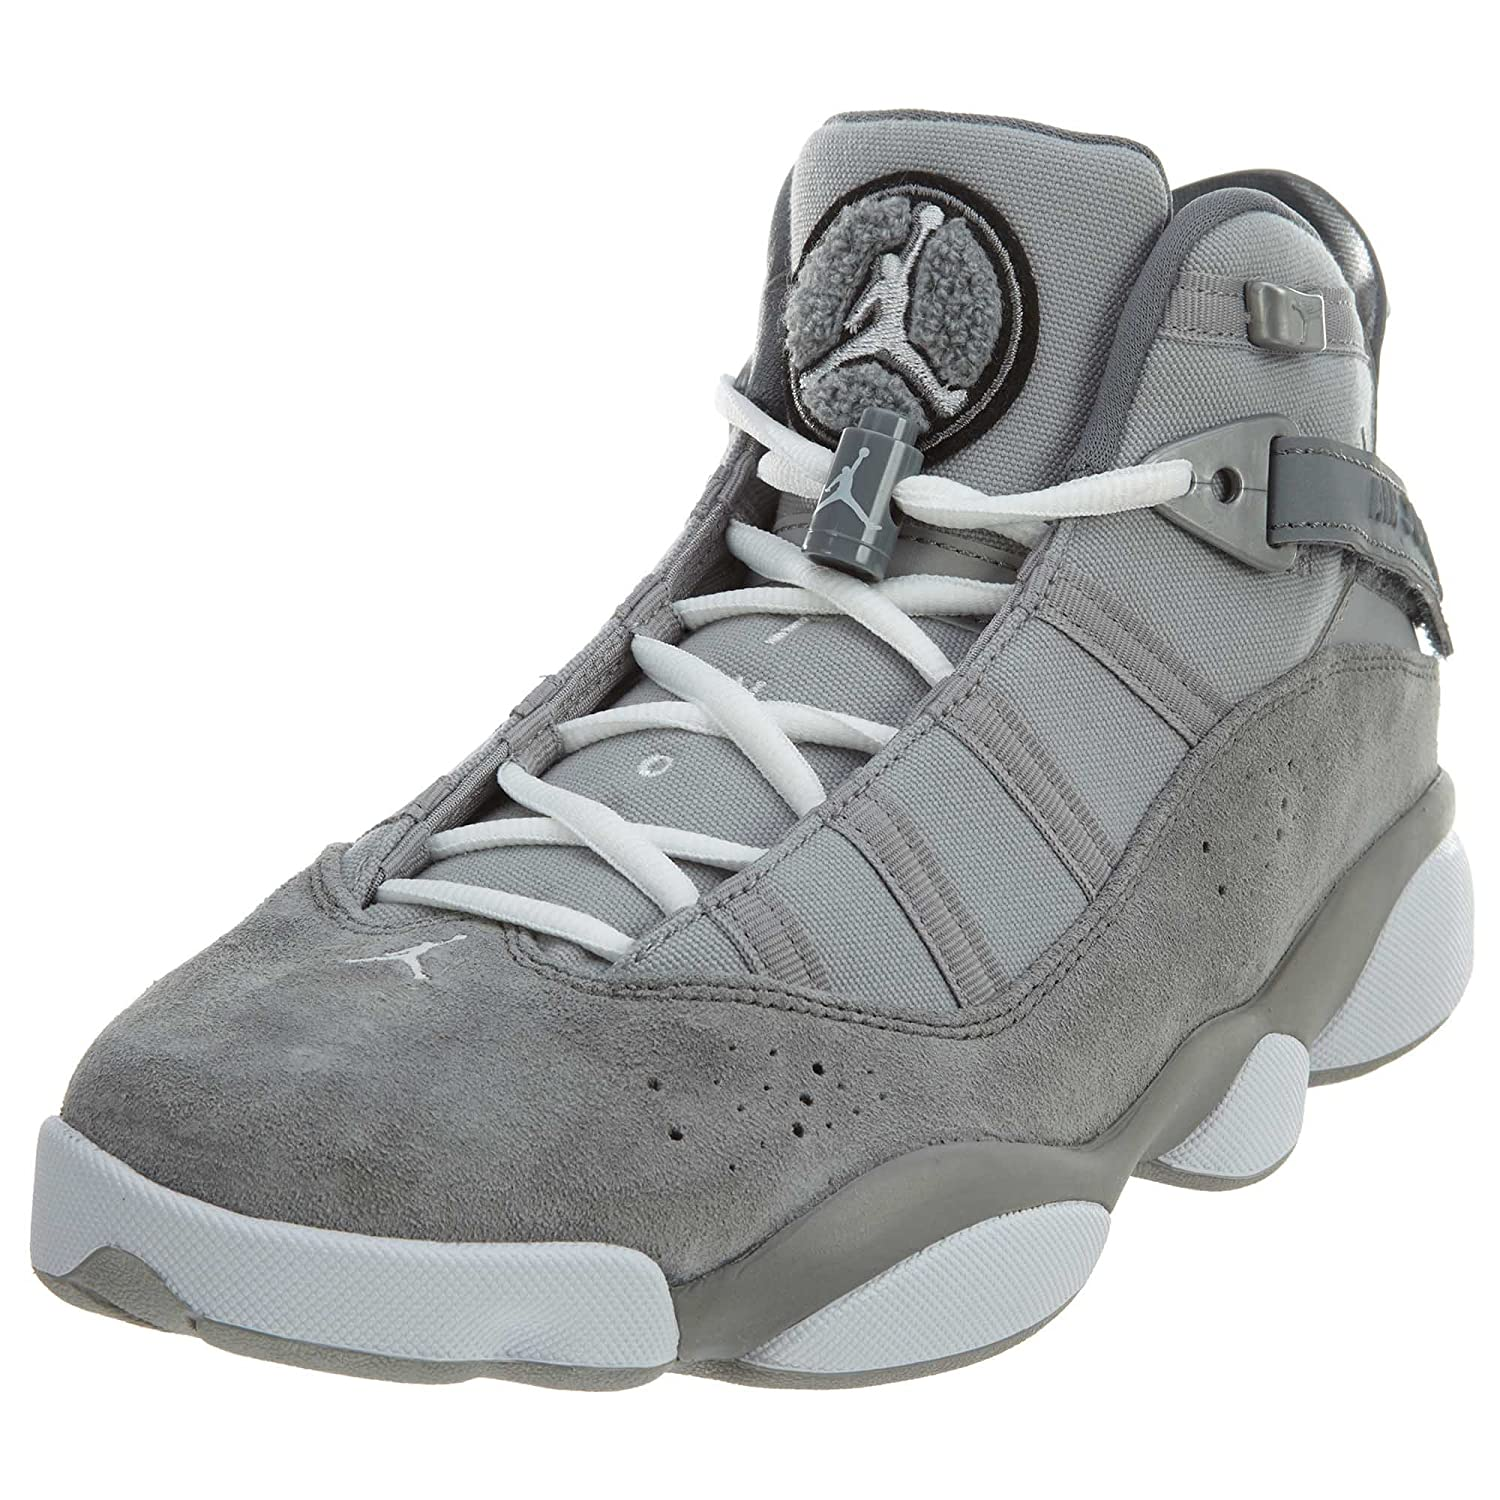 80955f10f332 Jordan 6 Rings Mens Fashion-Sneakers 322992-014 12.5 - Matte Silver White-Cool  Grey  Buy Online at Low Prices in India - Amazon.in